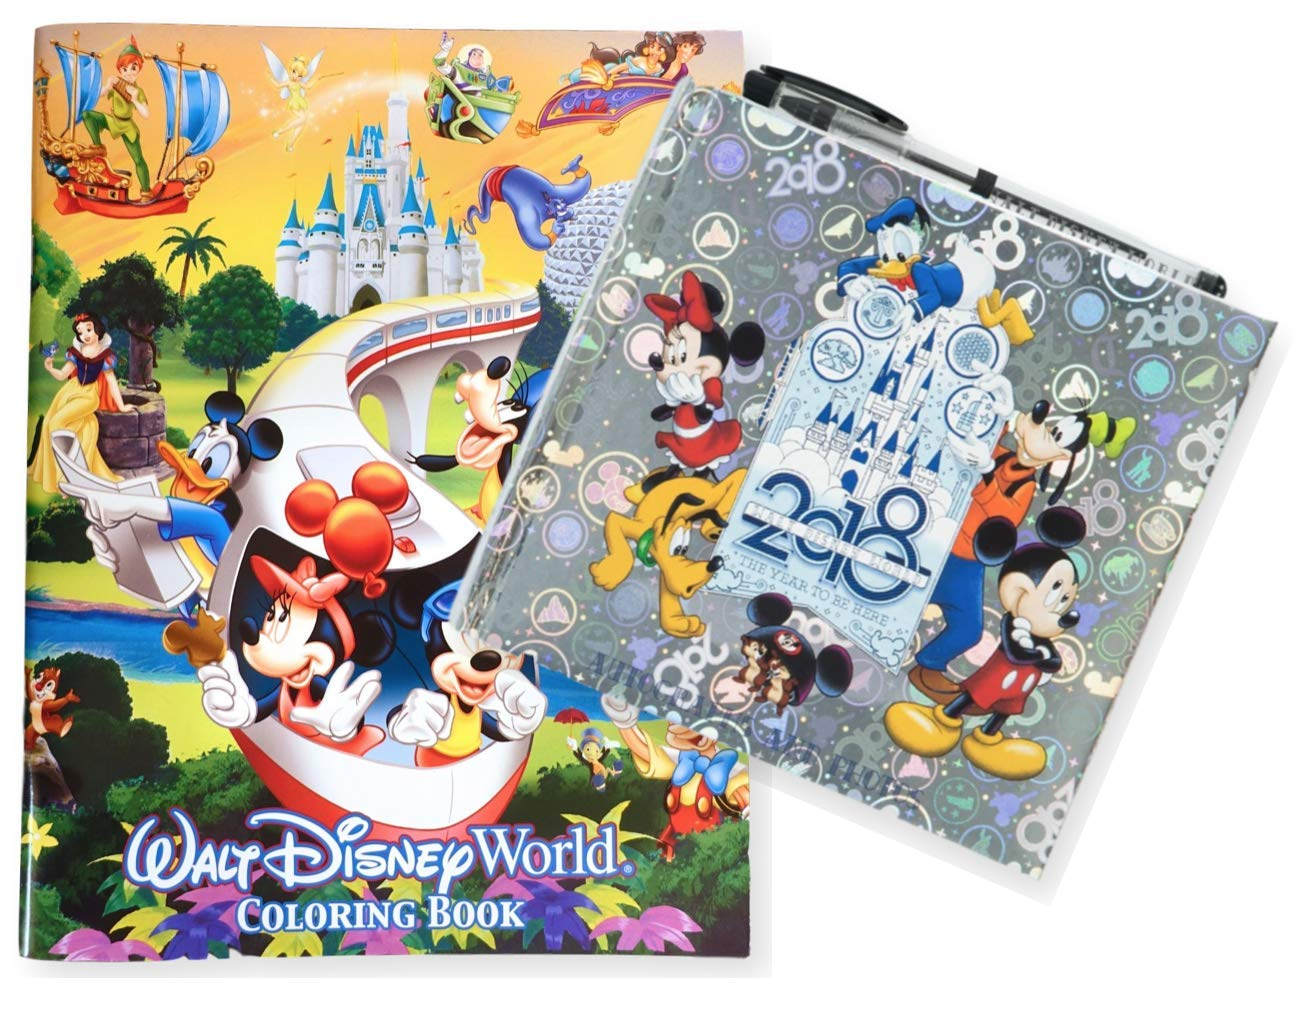 2018 Walt Disney World Autographs and Photographs Book with Pen and 96 Page Coloring Book